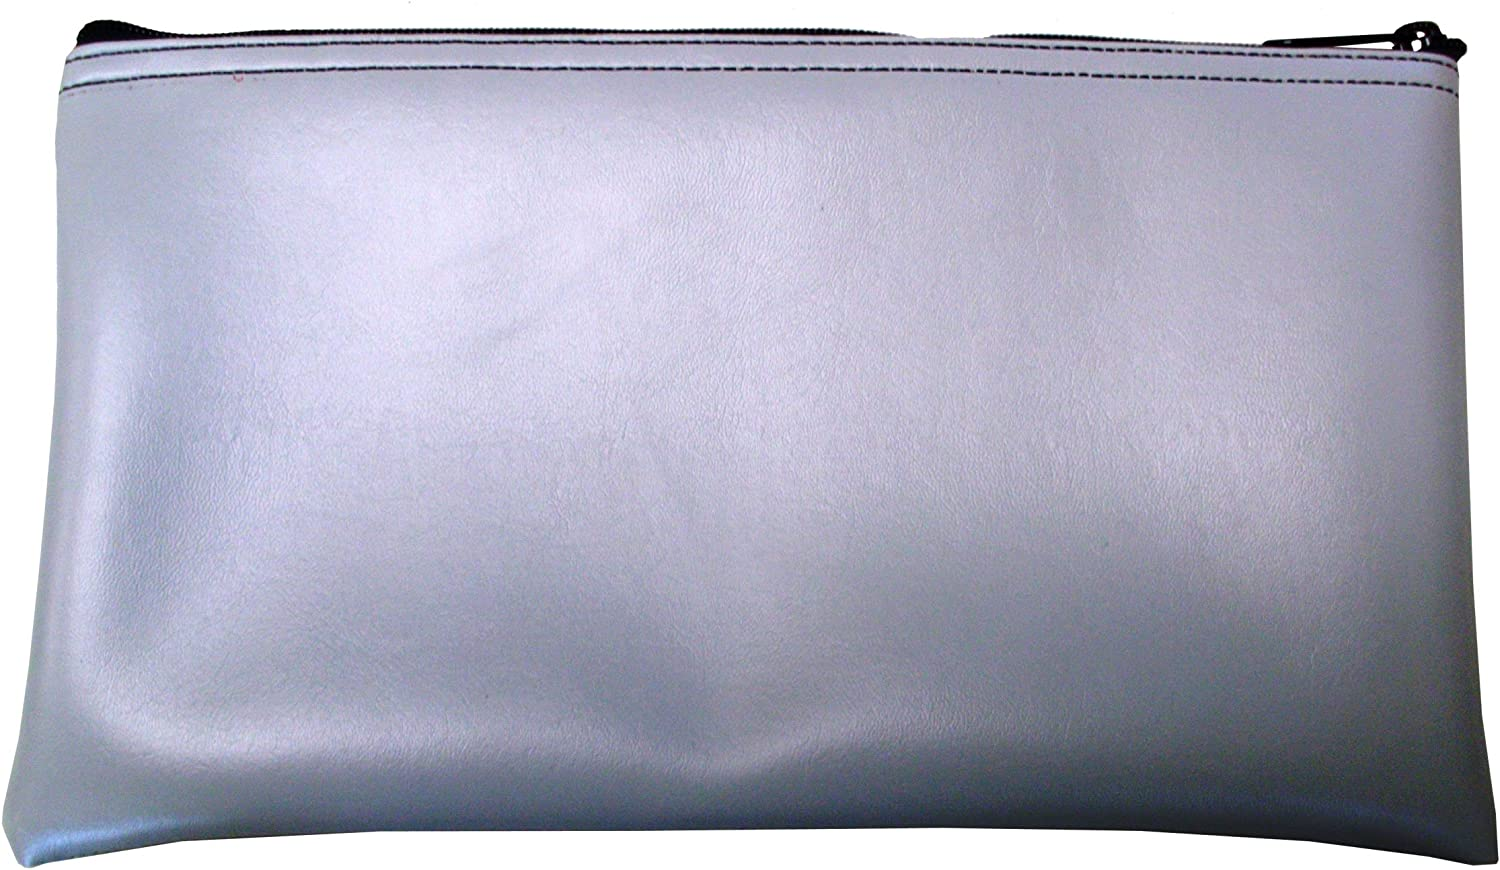 Vinyl Zipper Bags (Leatherette) Small, Compact Zippered Pouches | Portable Travel Utility | Check Wallet, Toiletries, Makeup, Cosmetics, Tools | Men, Women | Grey